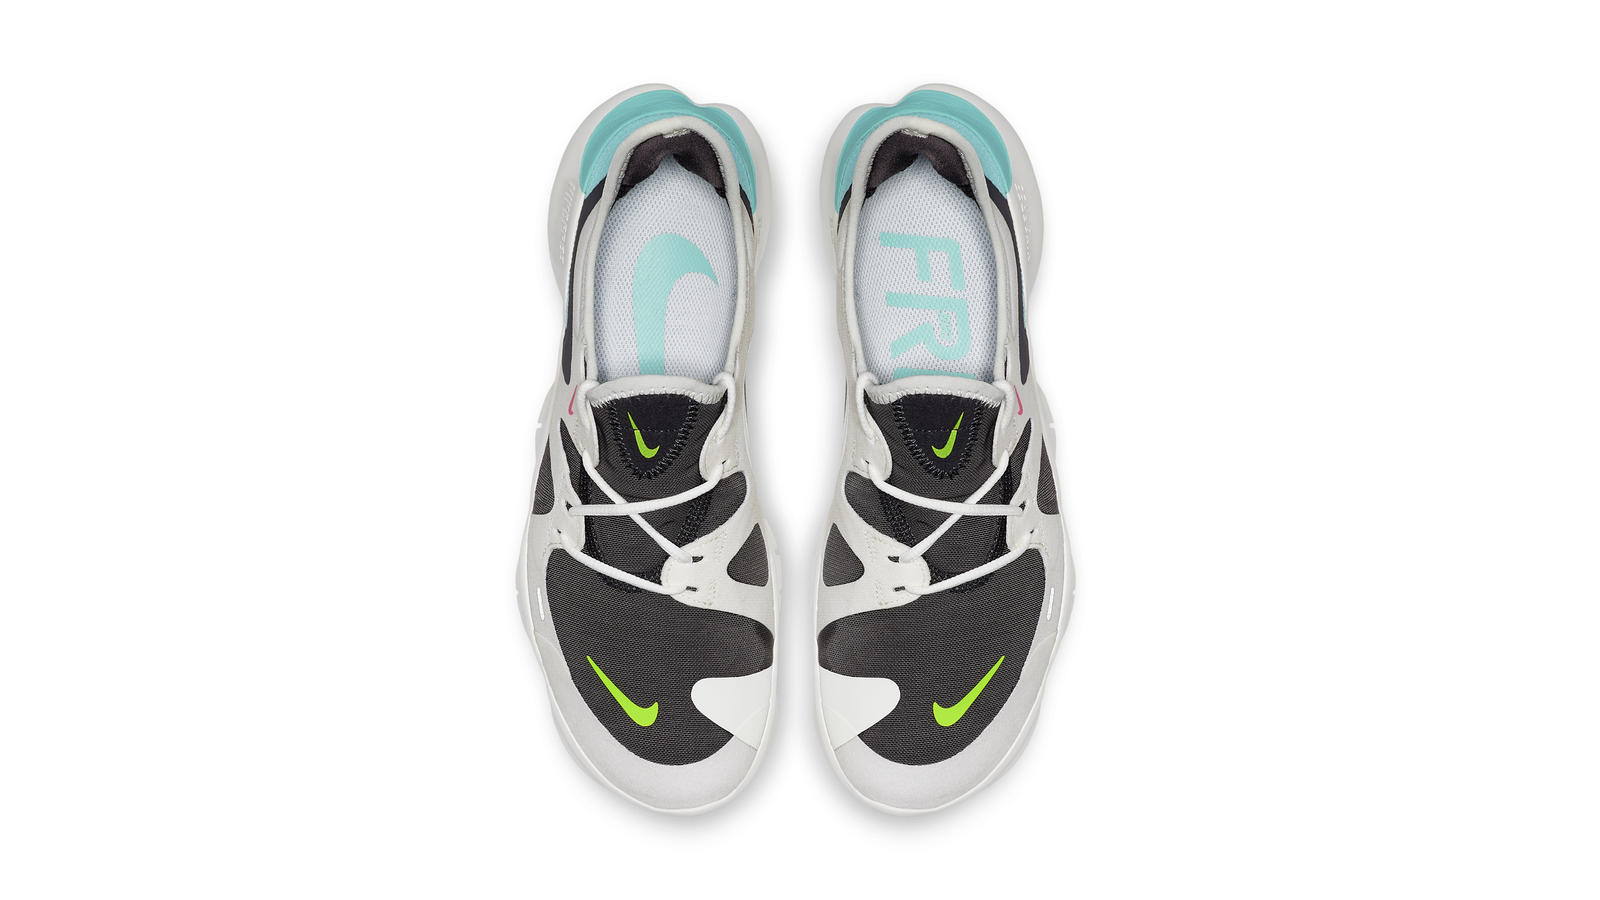 Discount Men's Nike Free Run 3.0 V5 Shoes Electric Lime